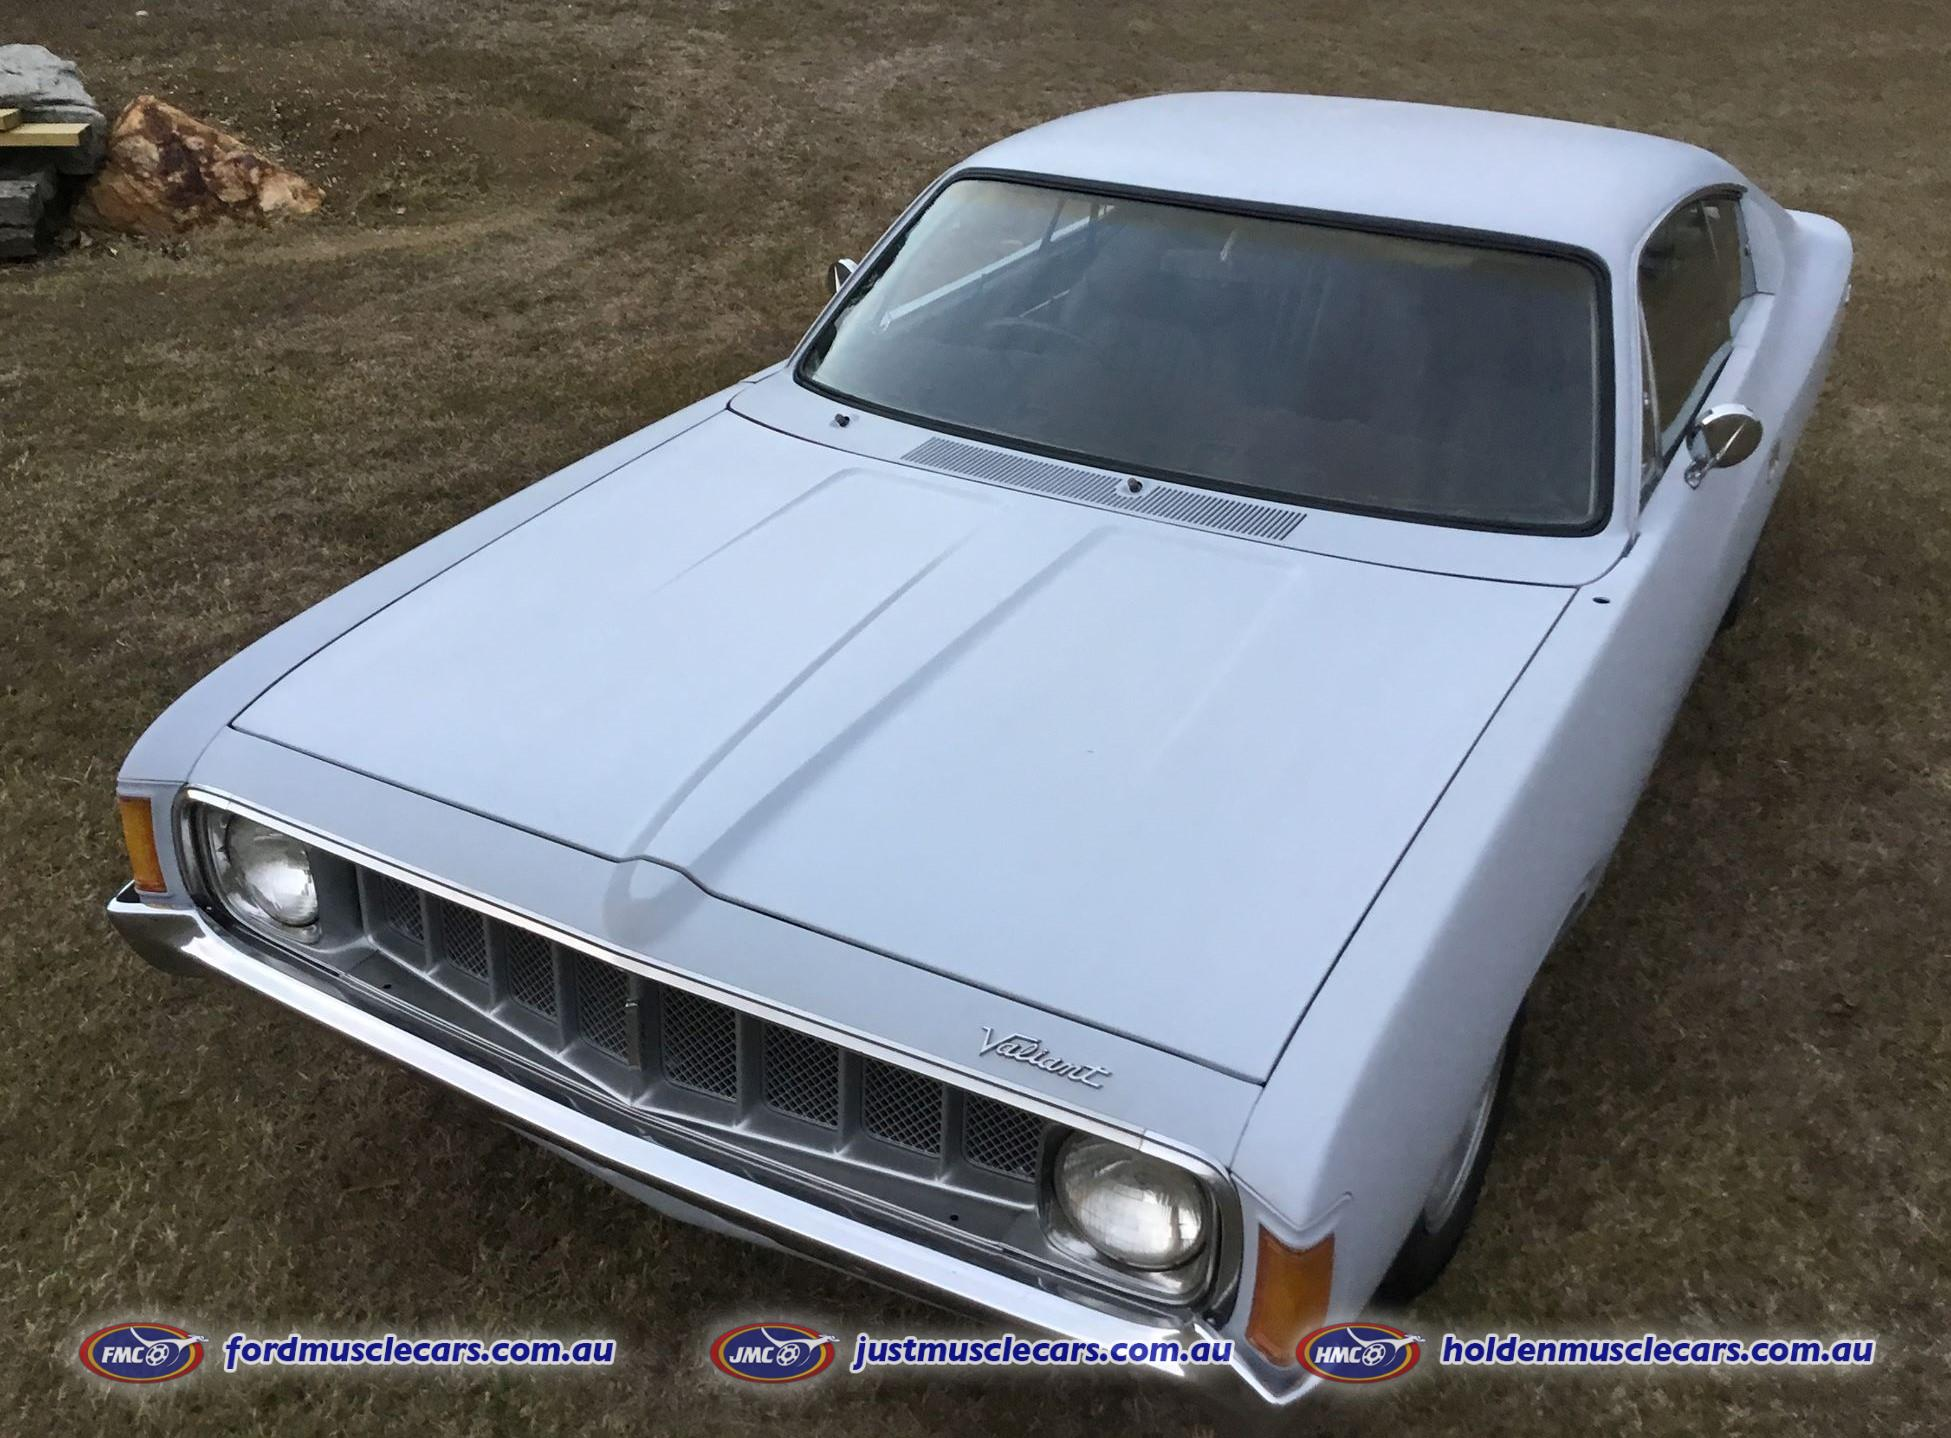 VALIANT CHARGER 1973 VJ 770